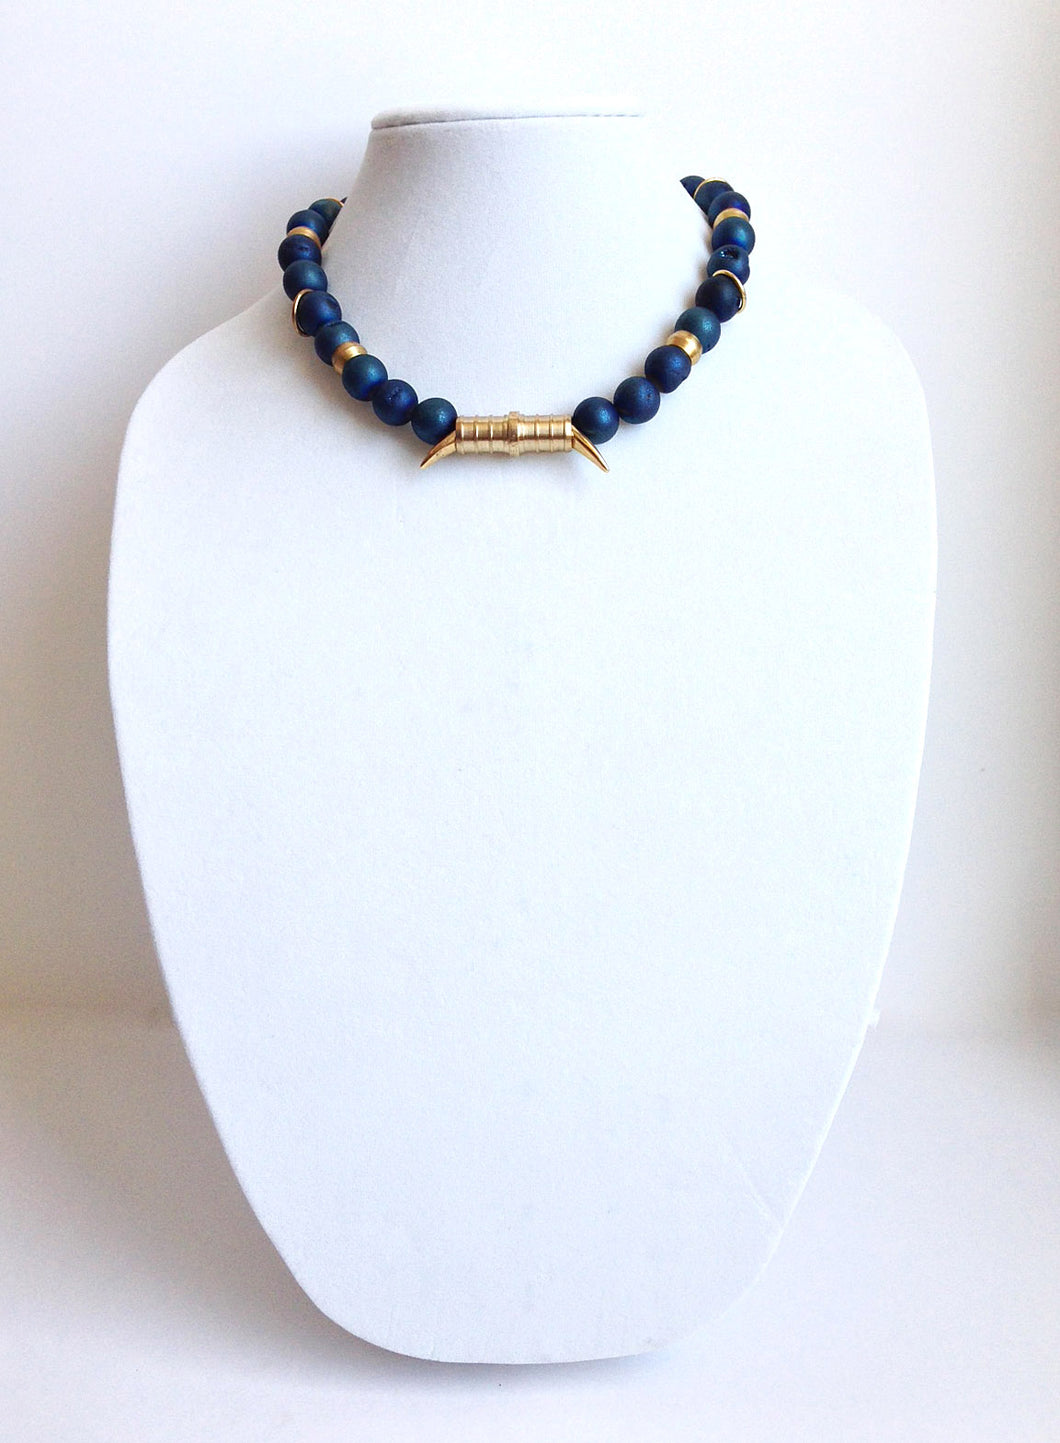 dark blue druzy agate beads mixed with metal - 16